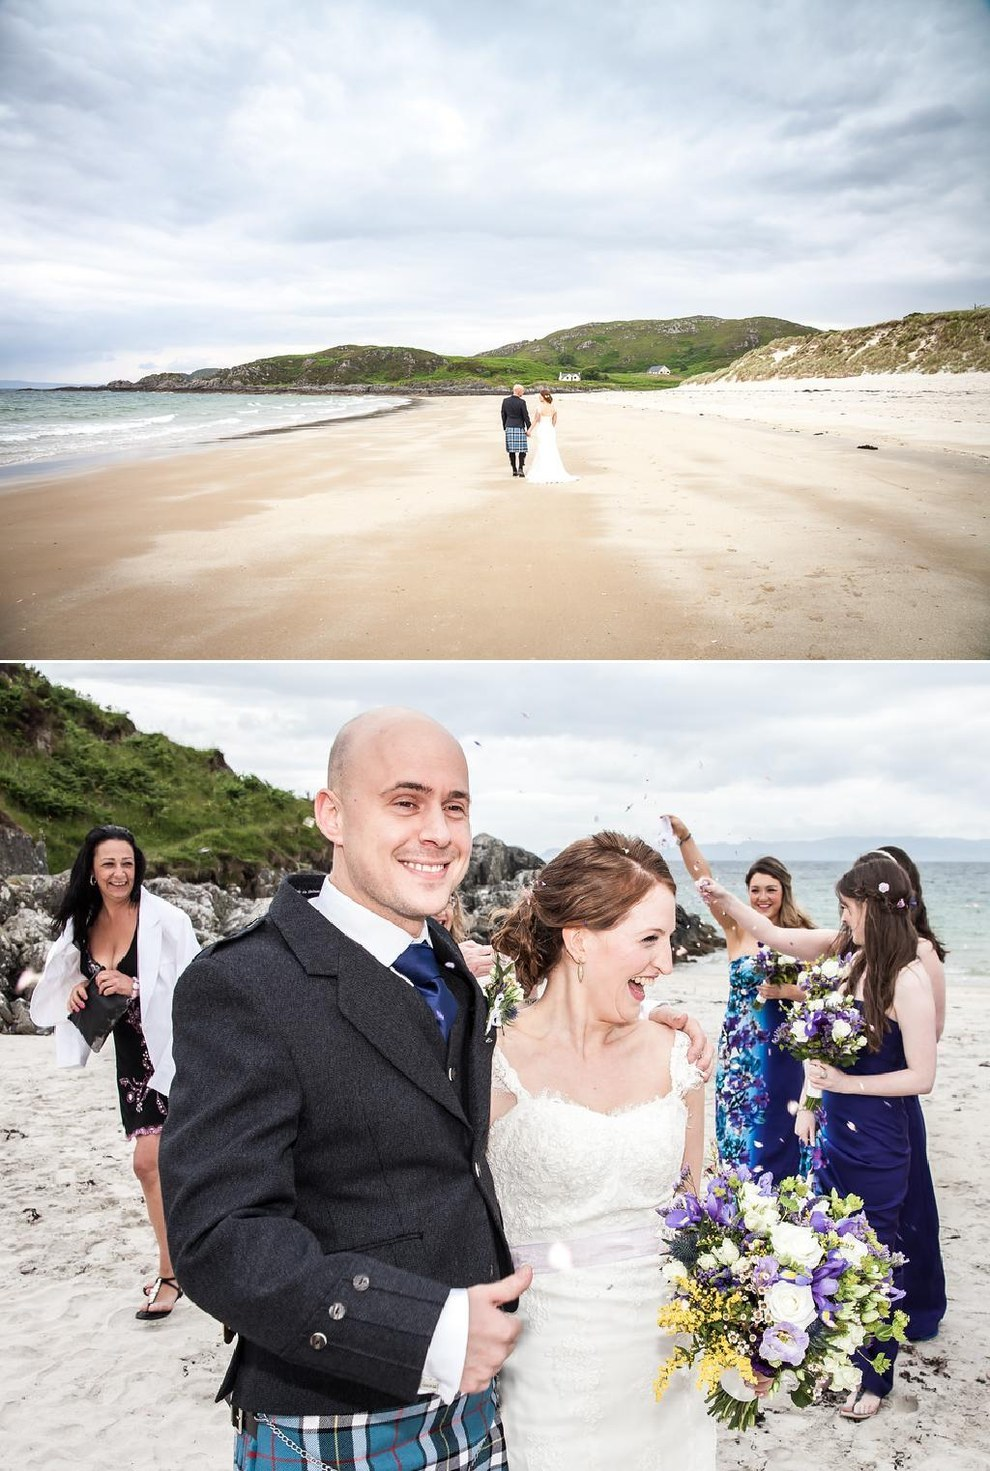 Couple: Kenny and Christina. Photographer: Brian O'Neill/ Crieff Photography